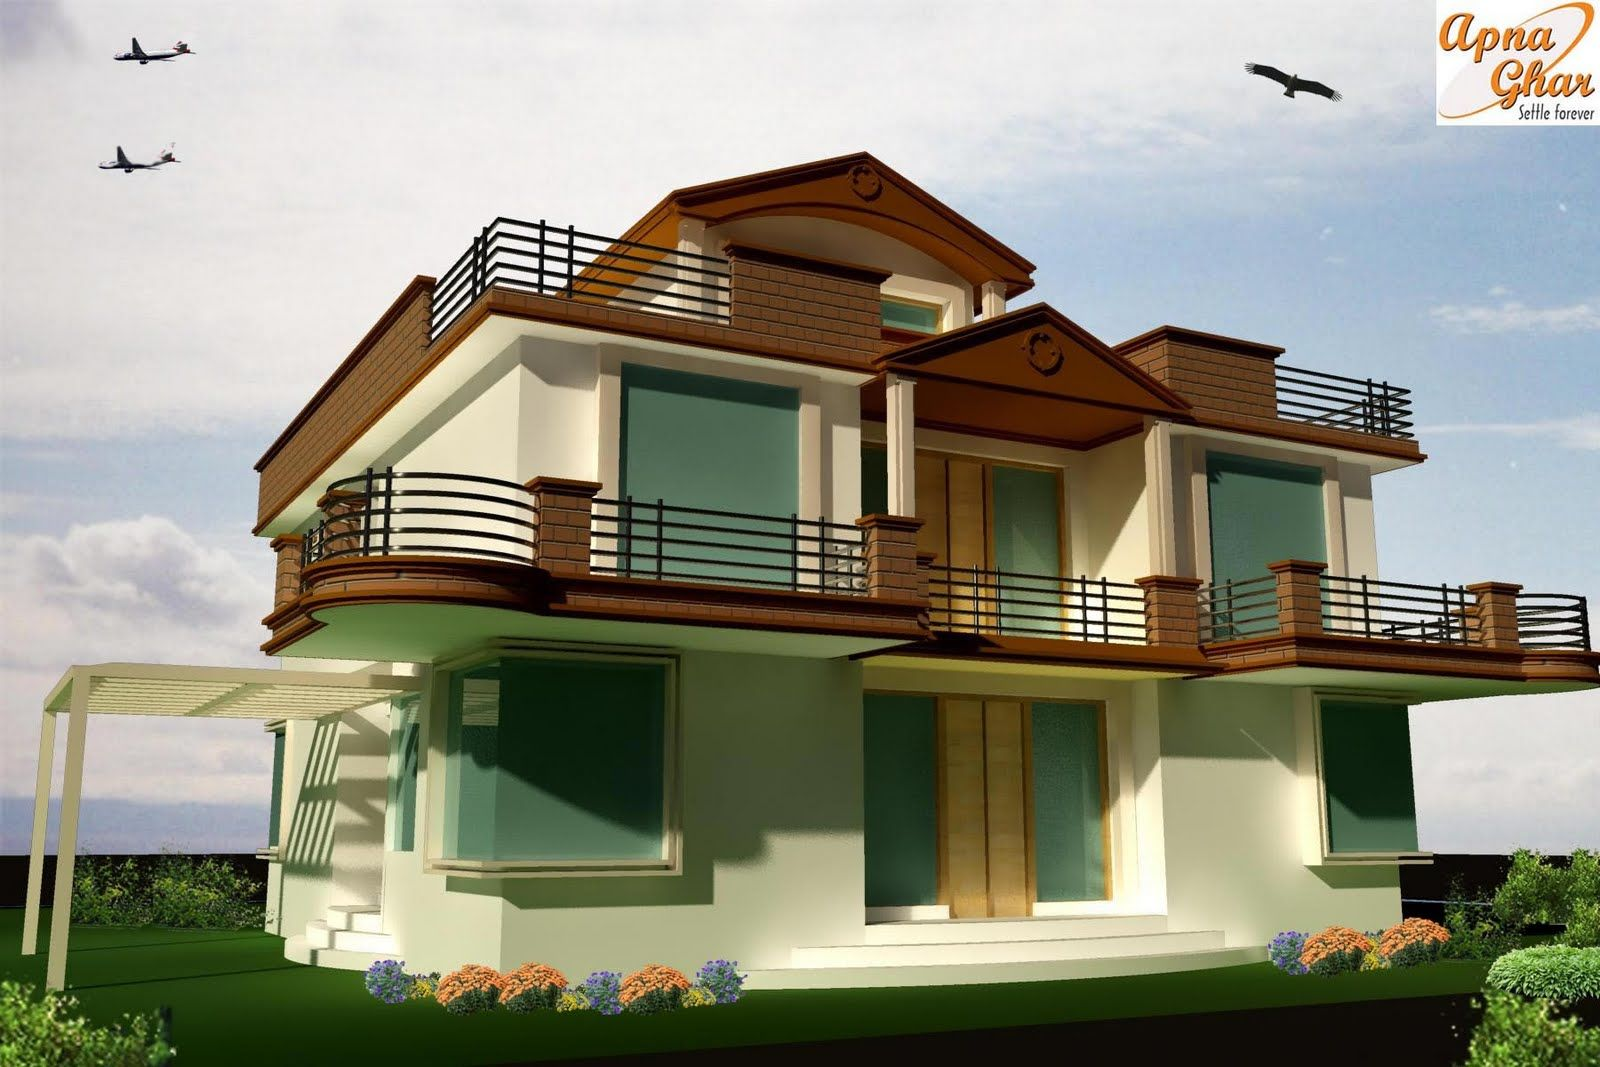 Architectural designs modern architectural house plans for Best architect design for home